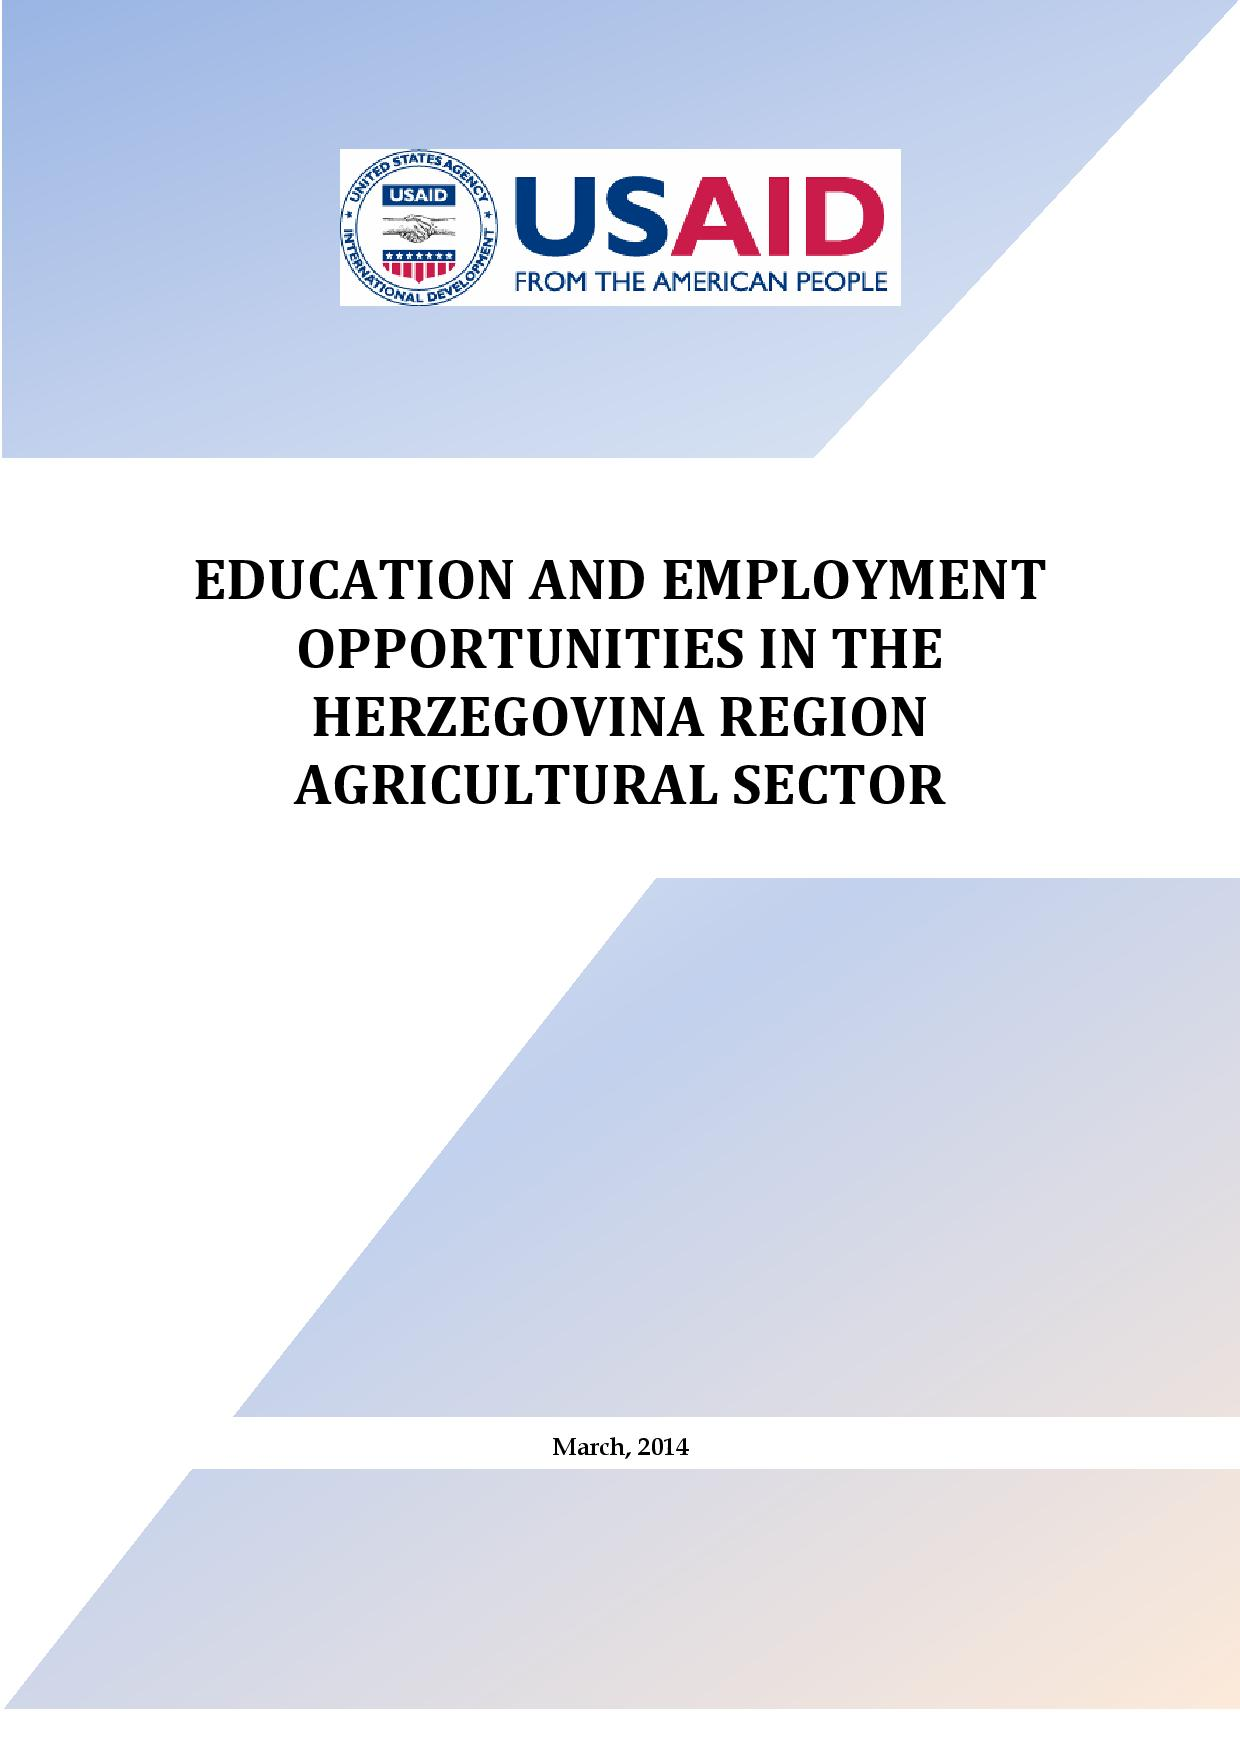 EDUCATION_AND_EMPLOYMENT_OPPORTUNITIES_IN_THE_HERZEGOVINA_REGION_AGRICULTURAL_SECTOR-page-001